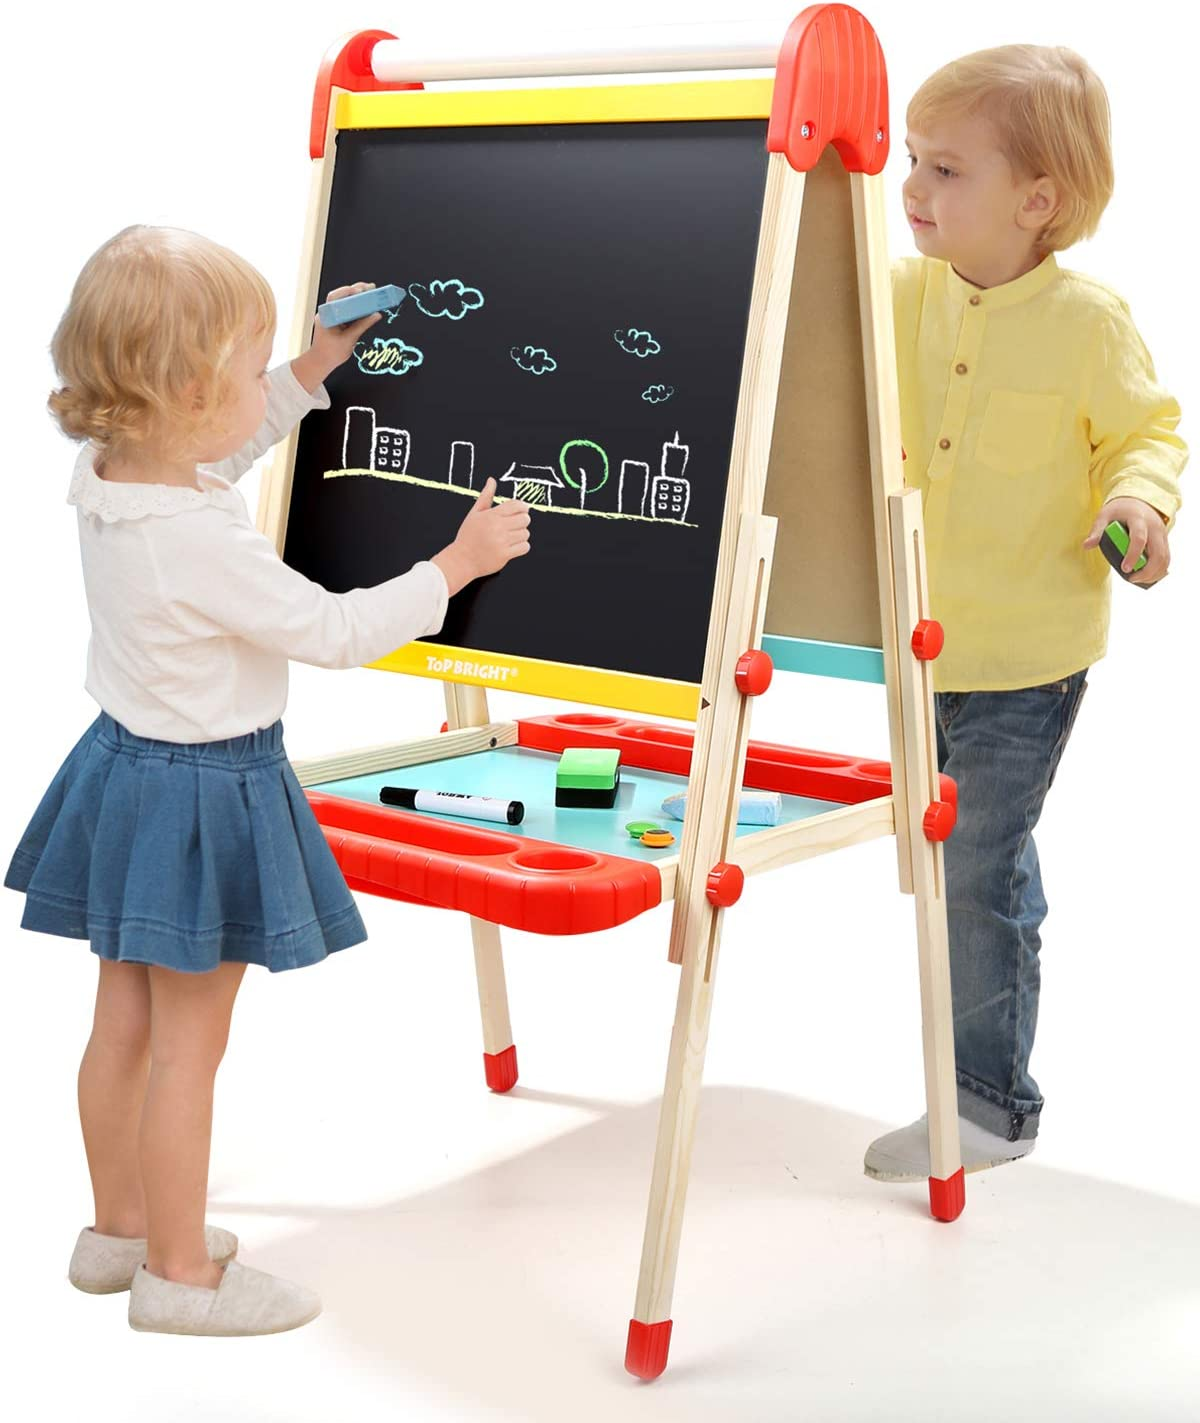 2. TOP BRIGHT Wooden Art Easel